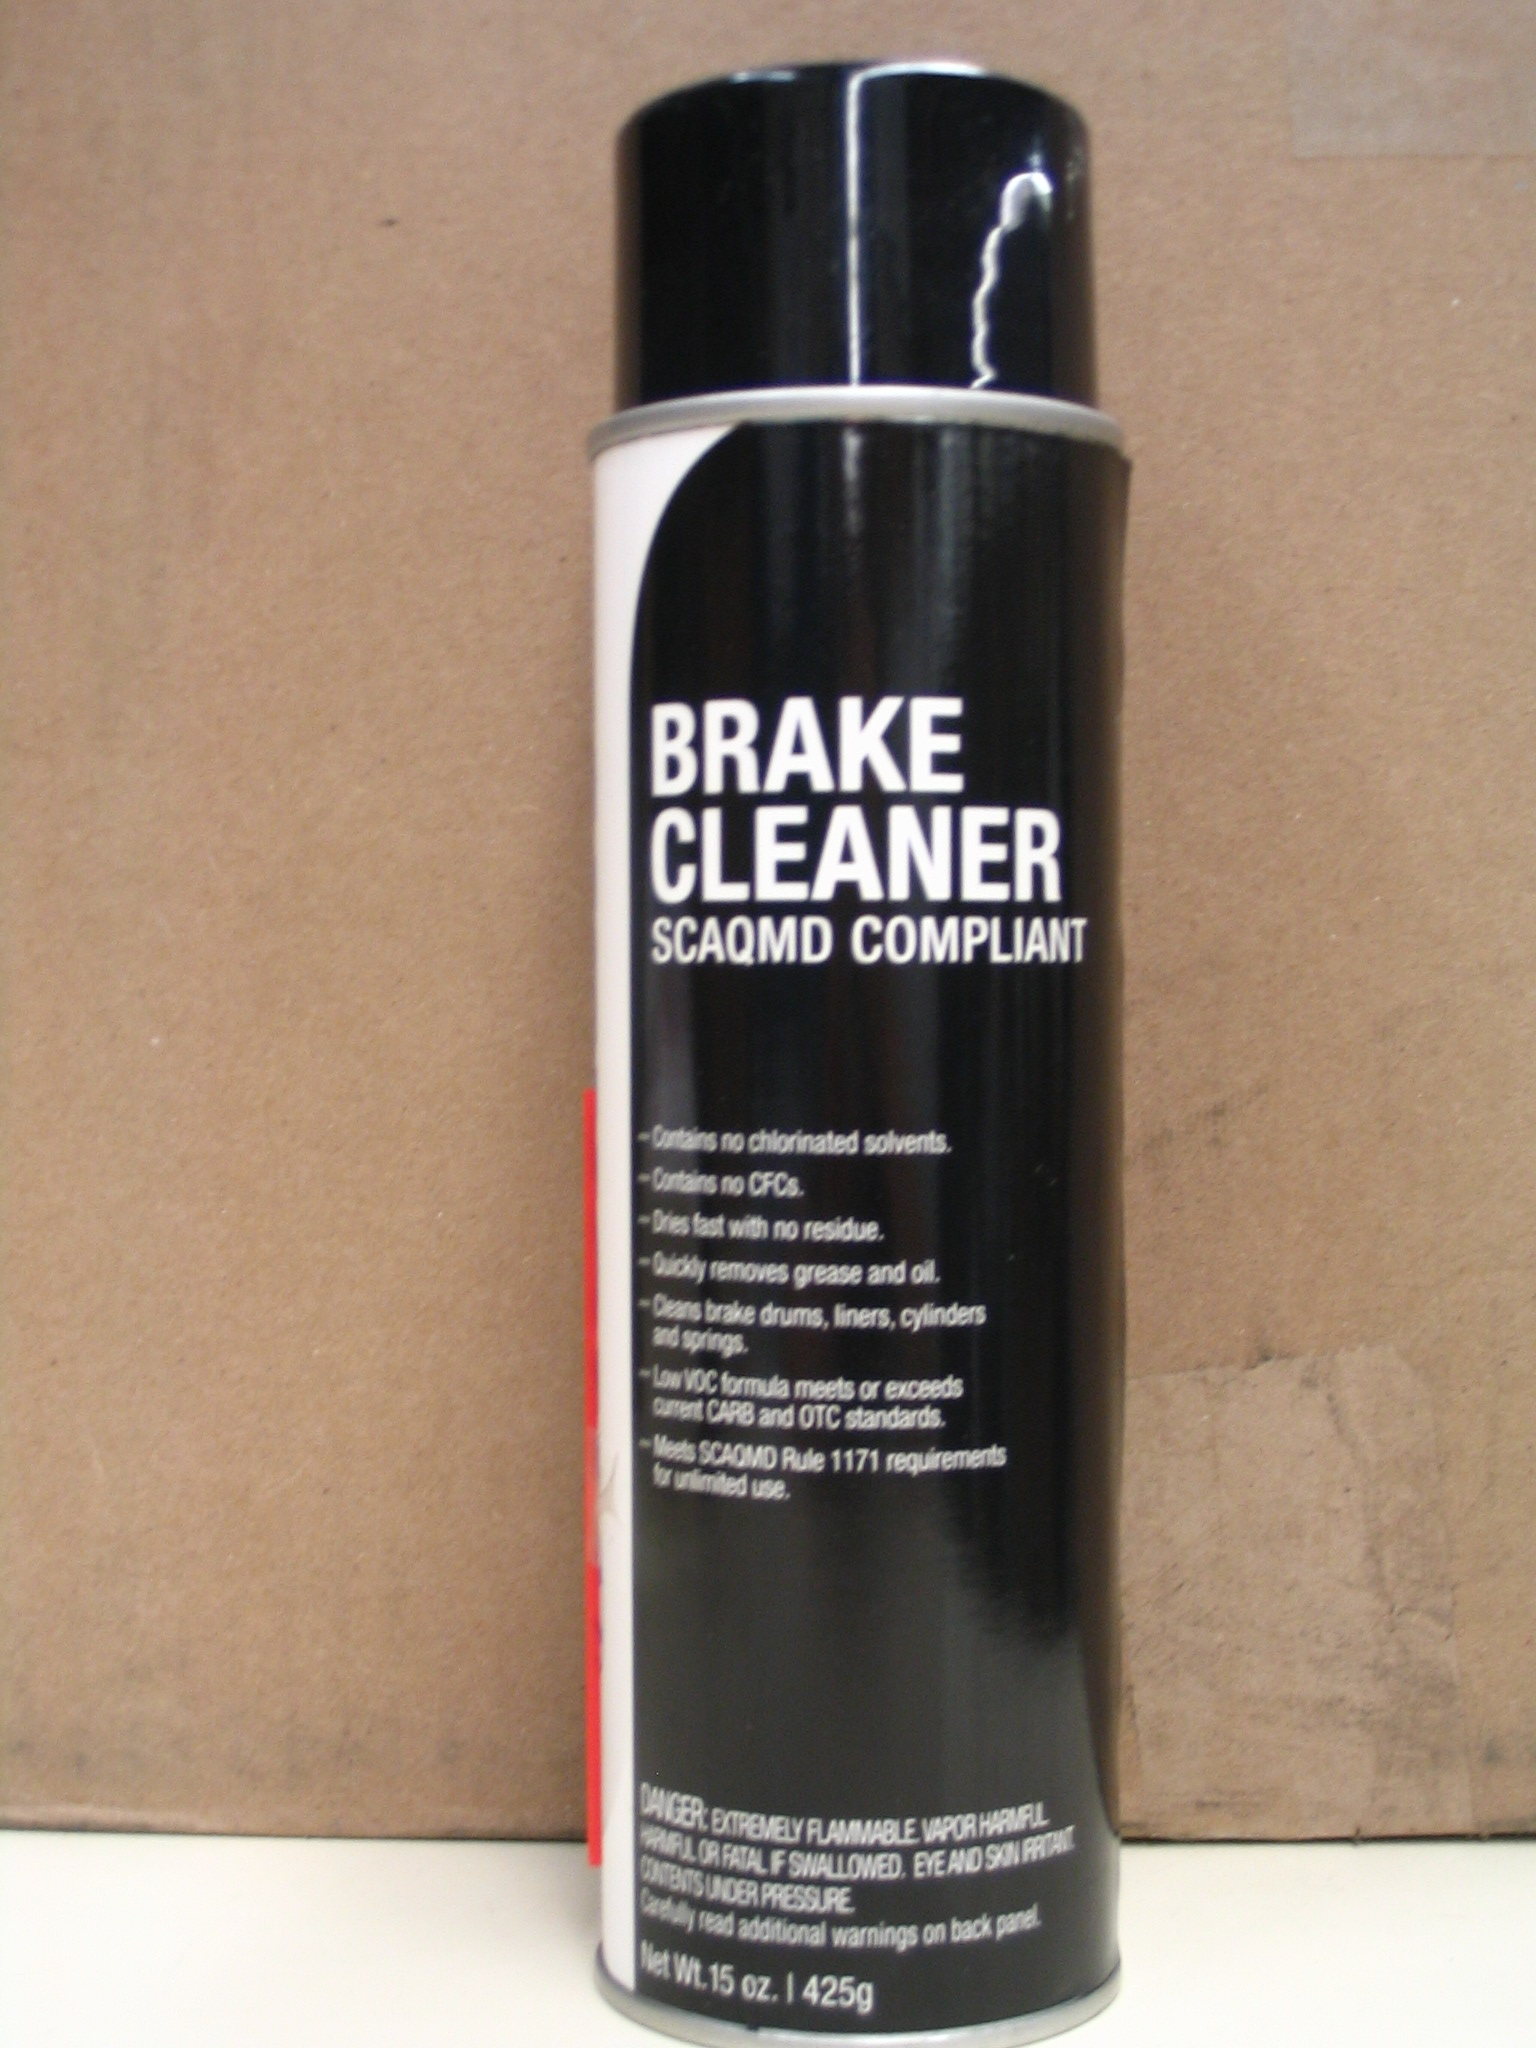 Low Brake Fluid >> Brake Cleaner 08700-9201 - $4.28